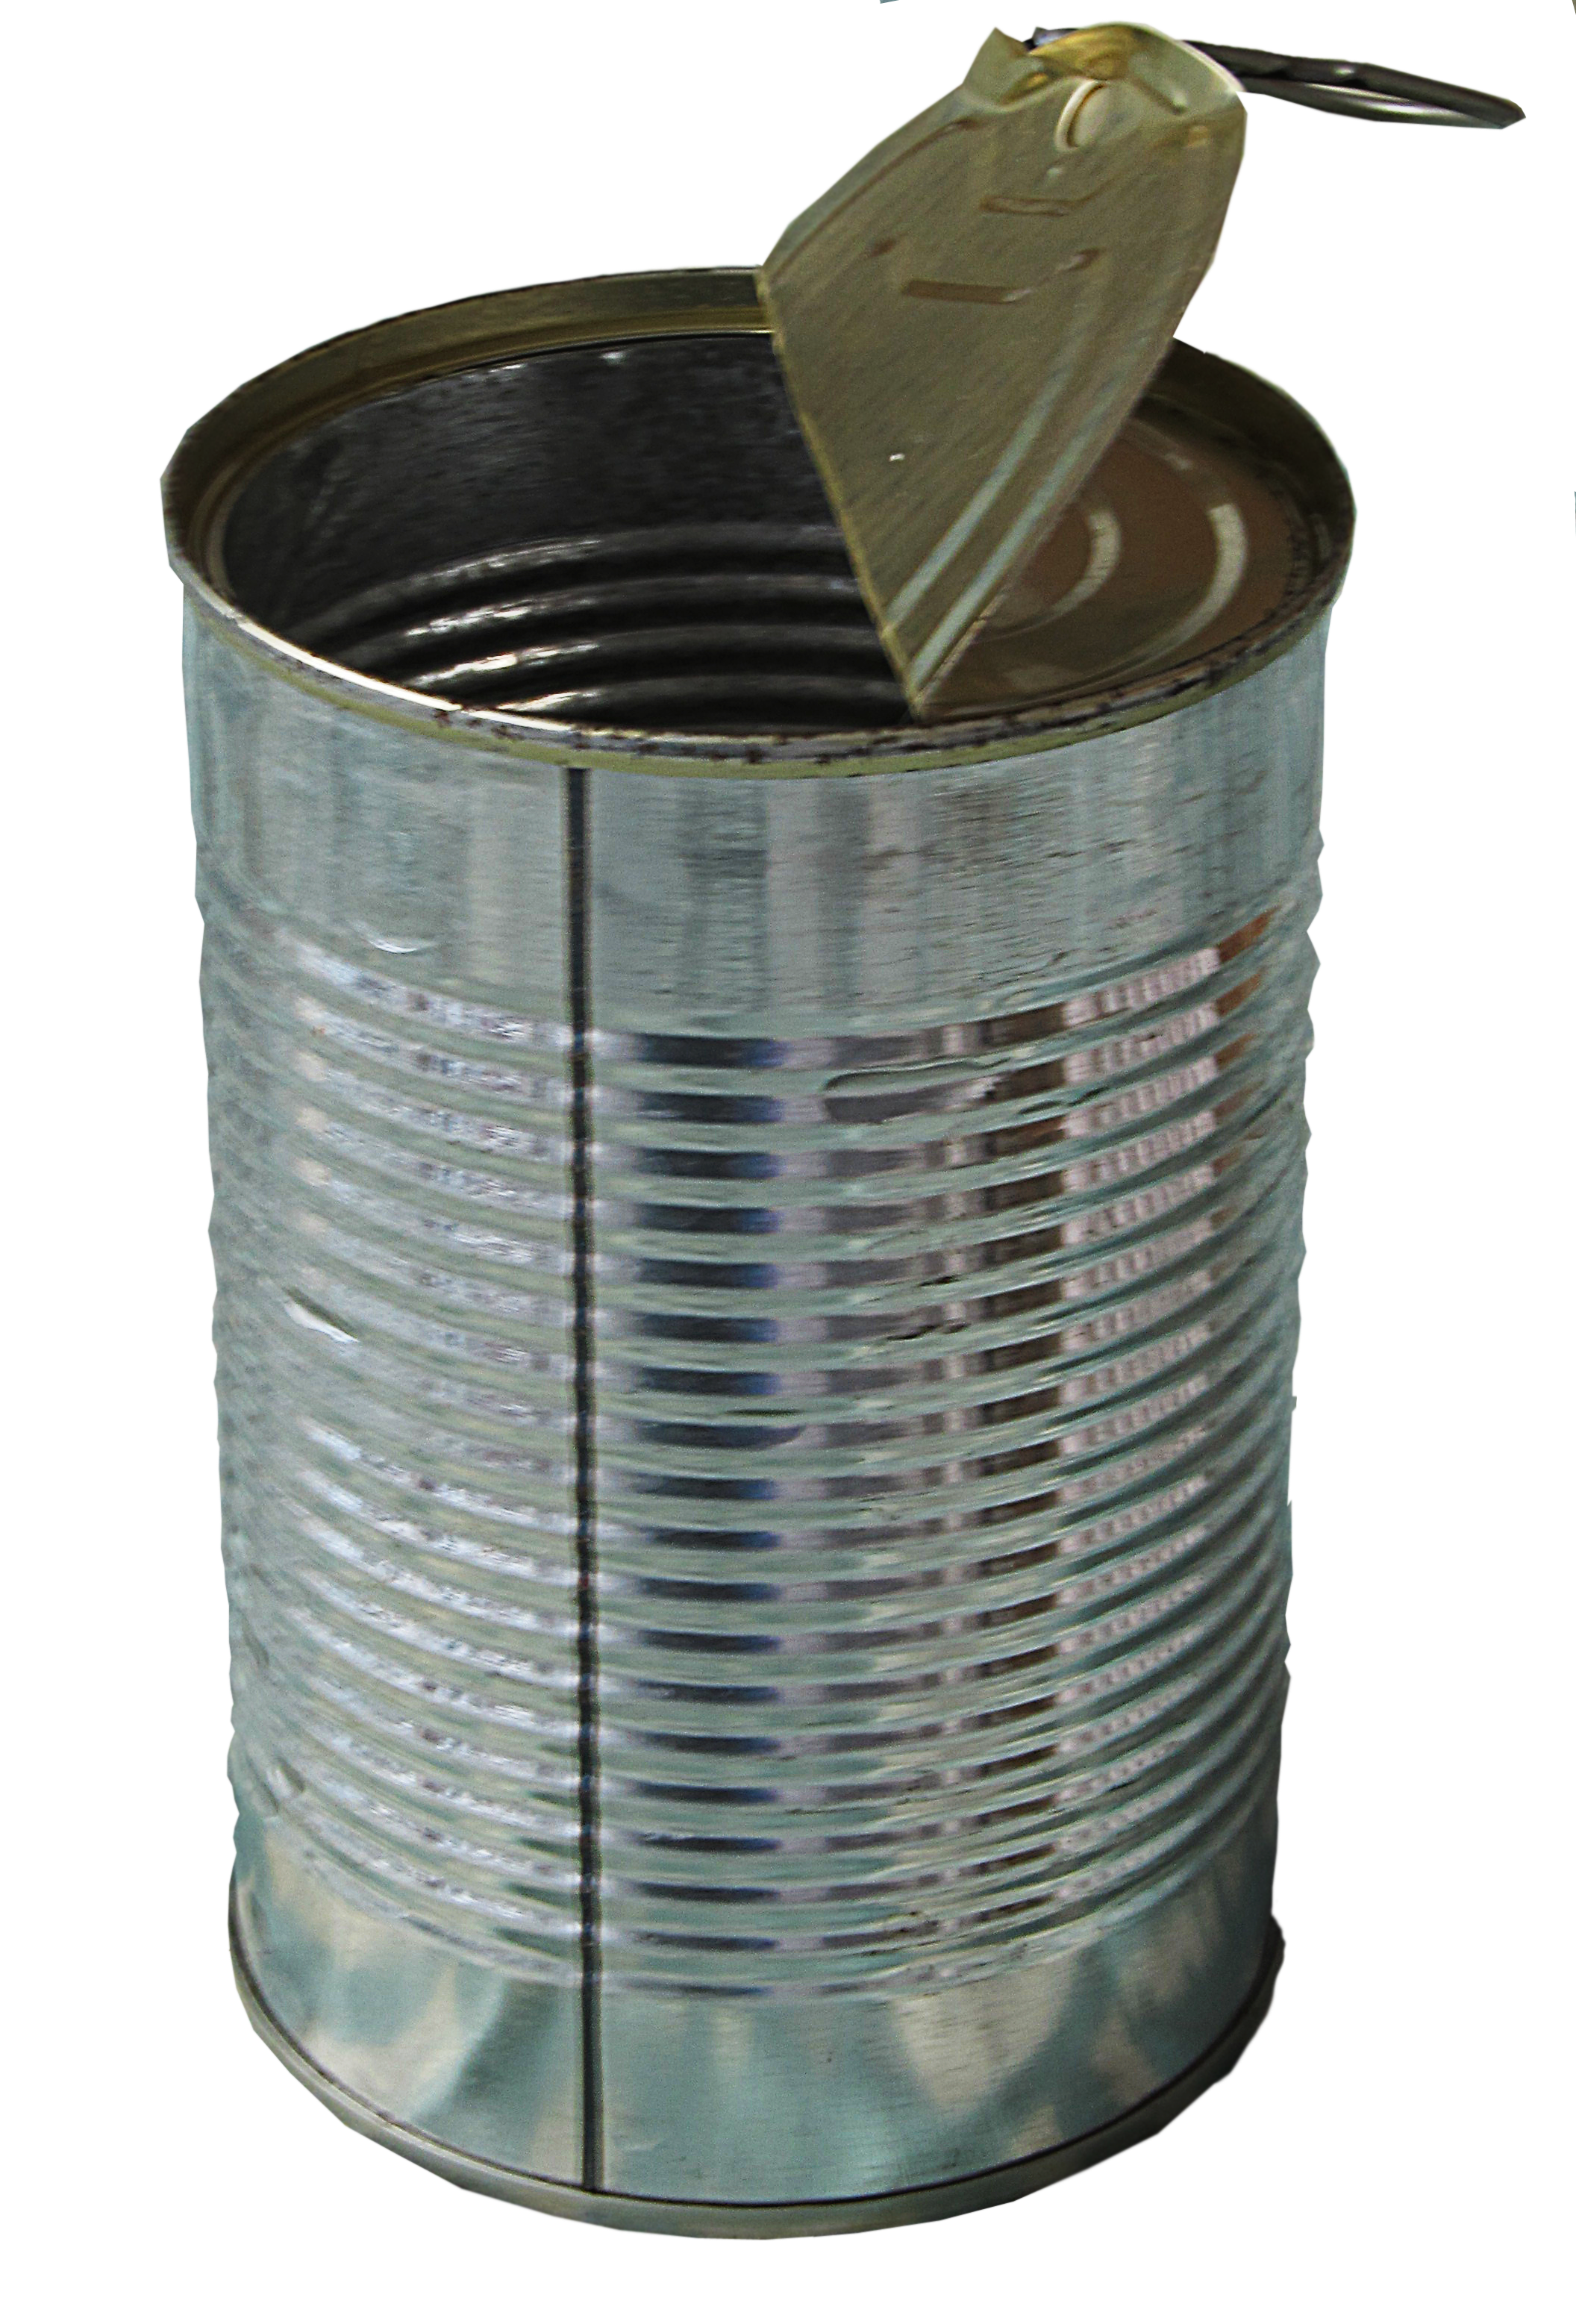 Tin Can Clipart.